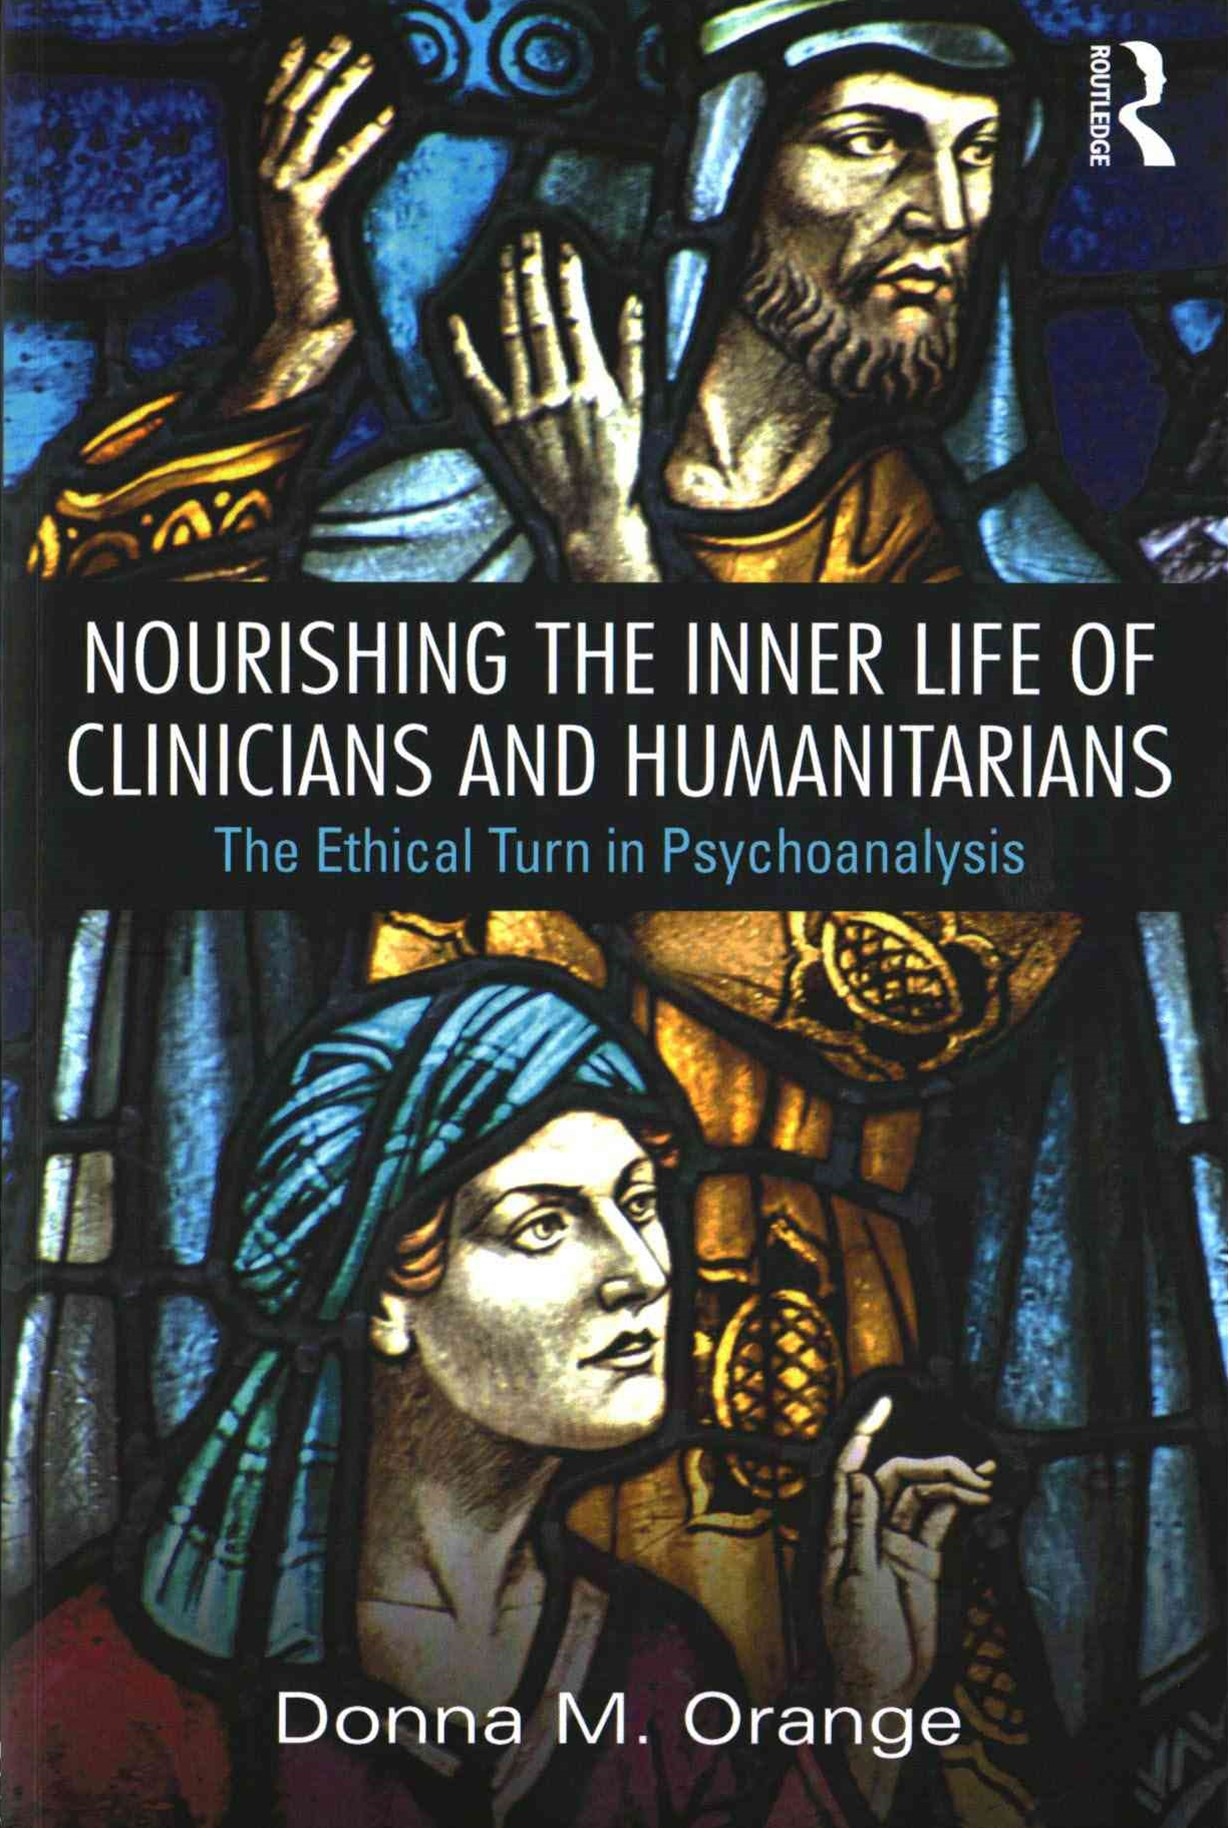 Nourishing the Inner Life of Clinicians and Humanitarians